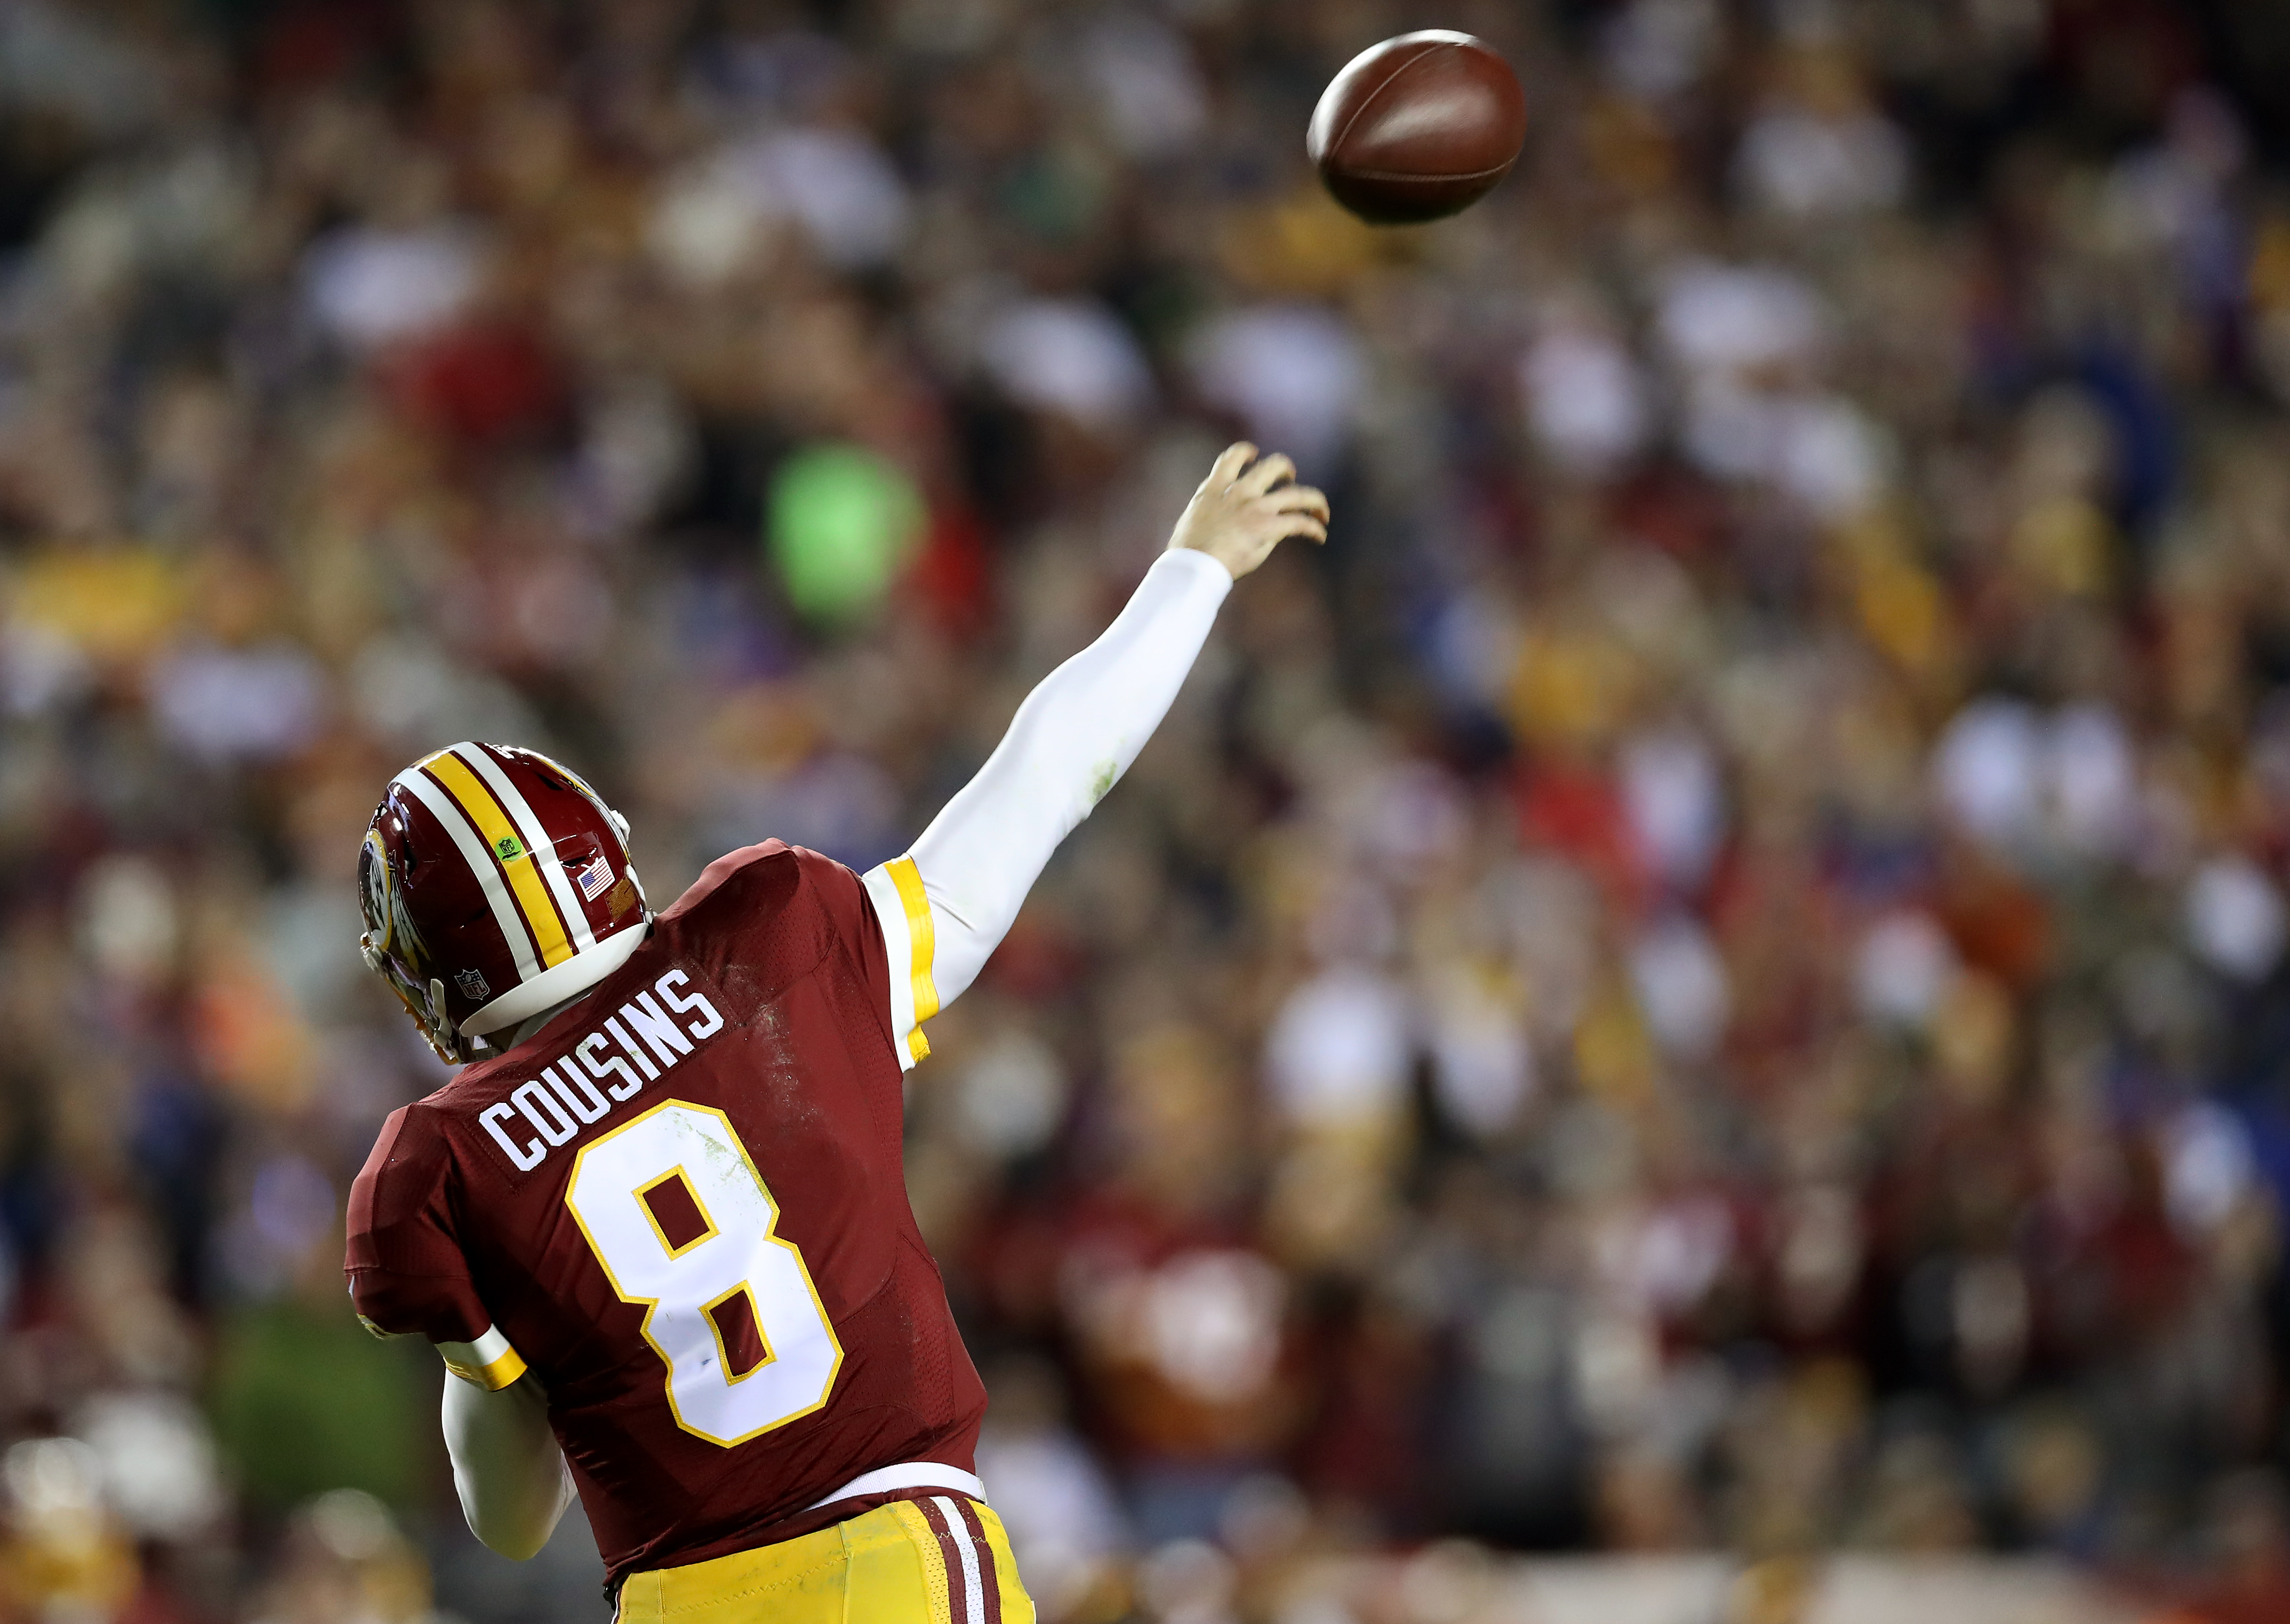 Redskins Kirk Cousins not playing out of his mind, but is playing above his Draft position.